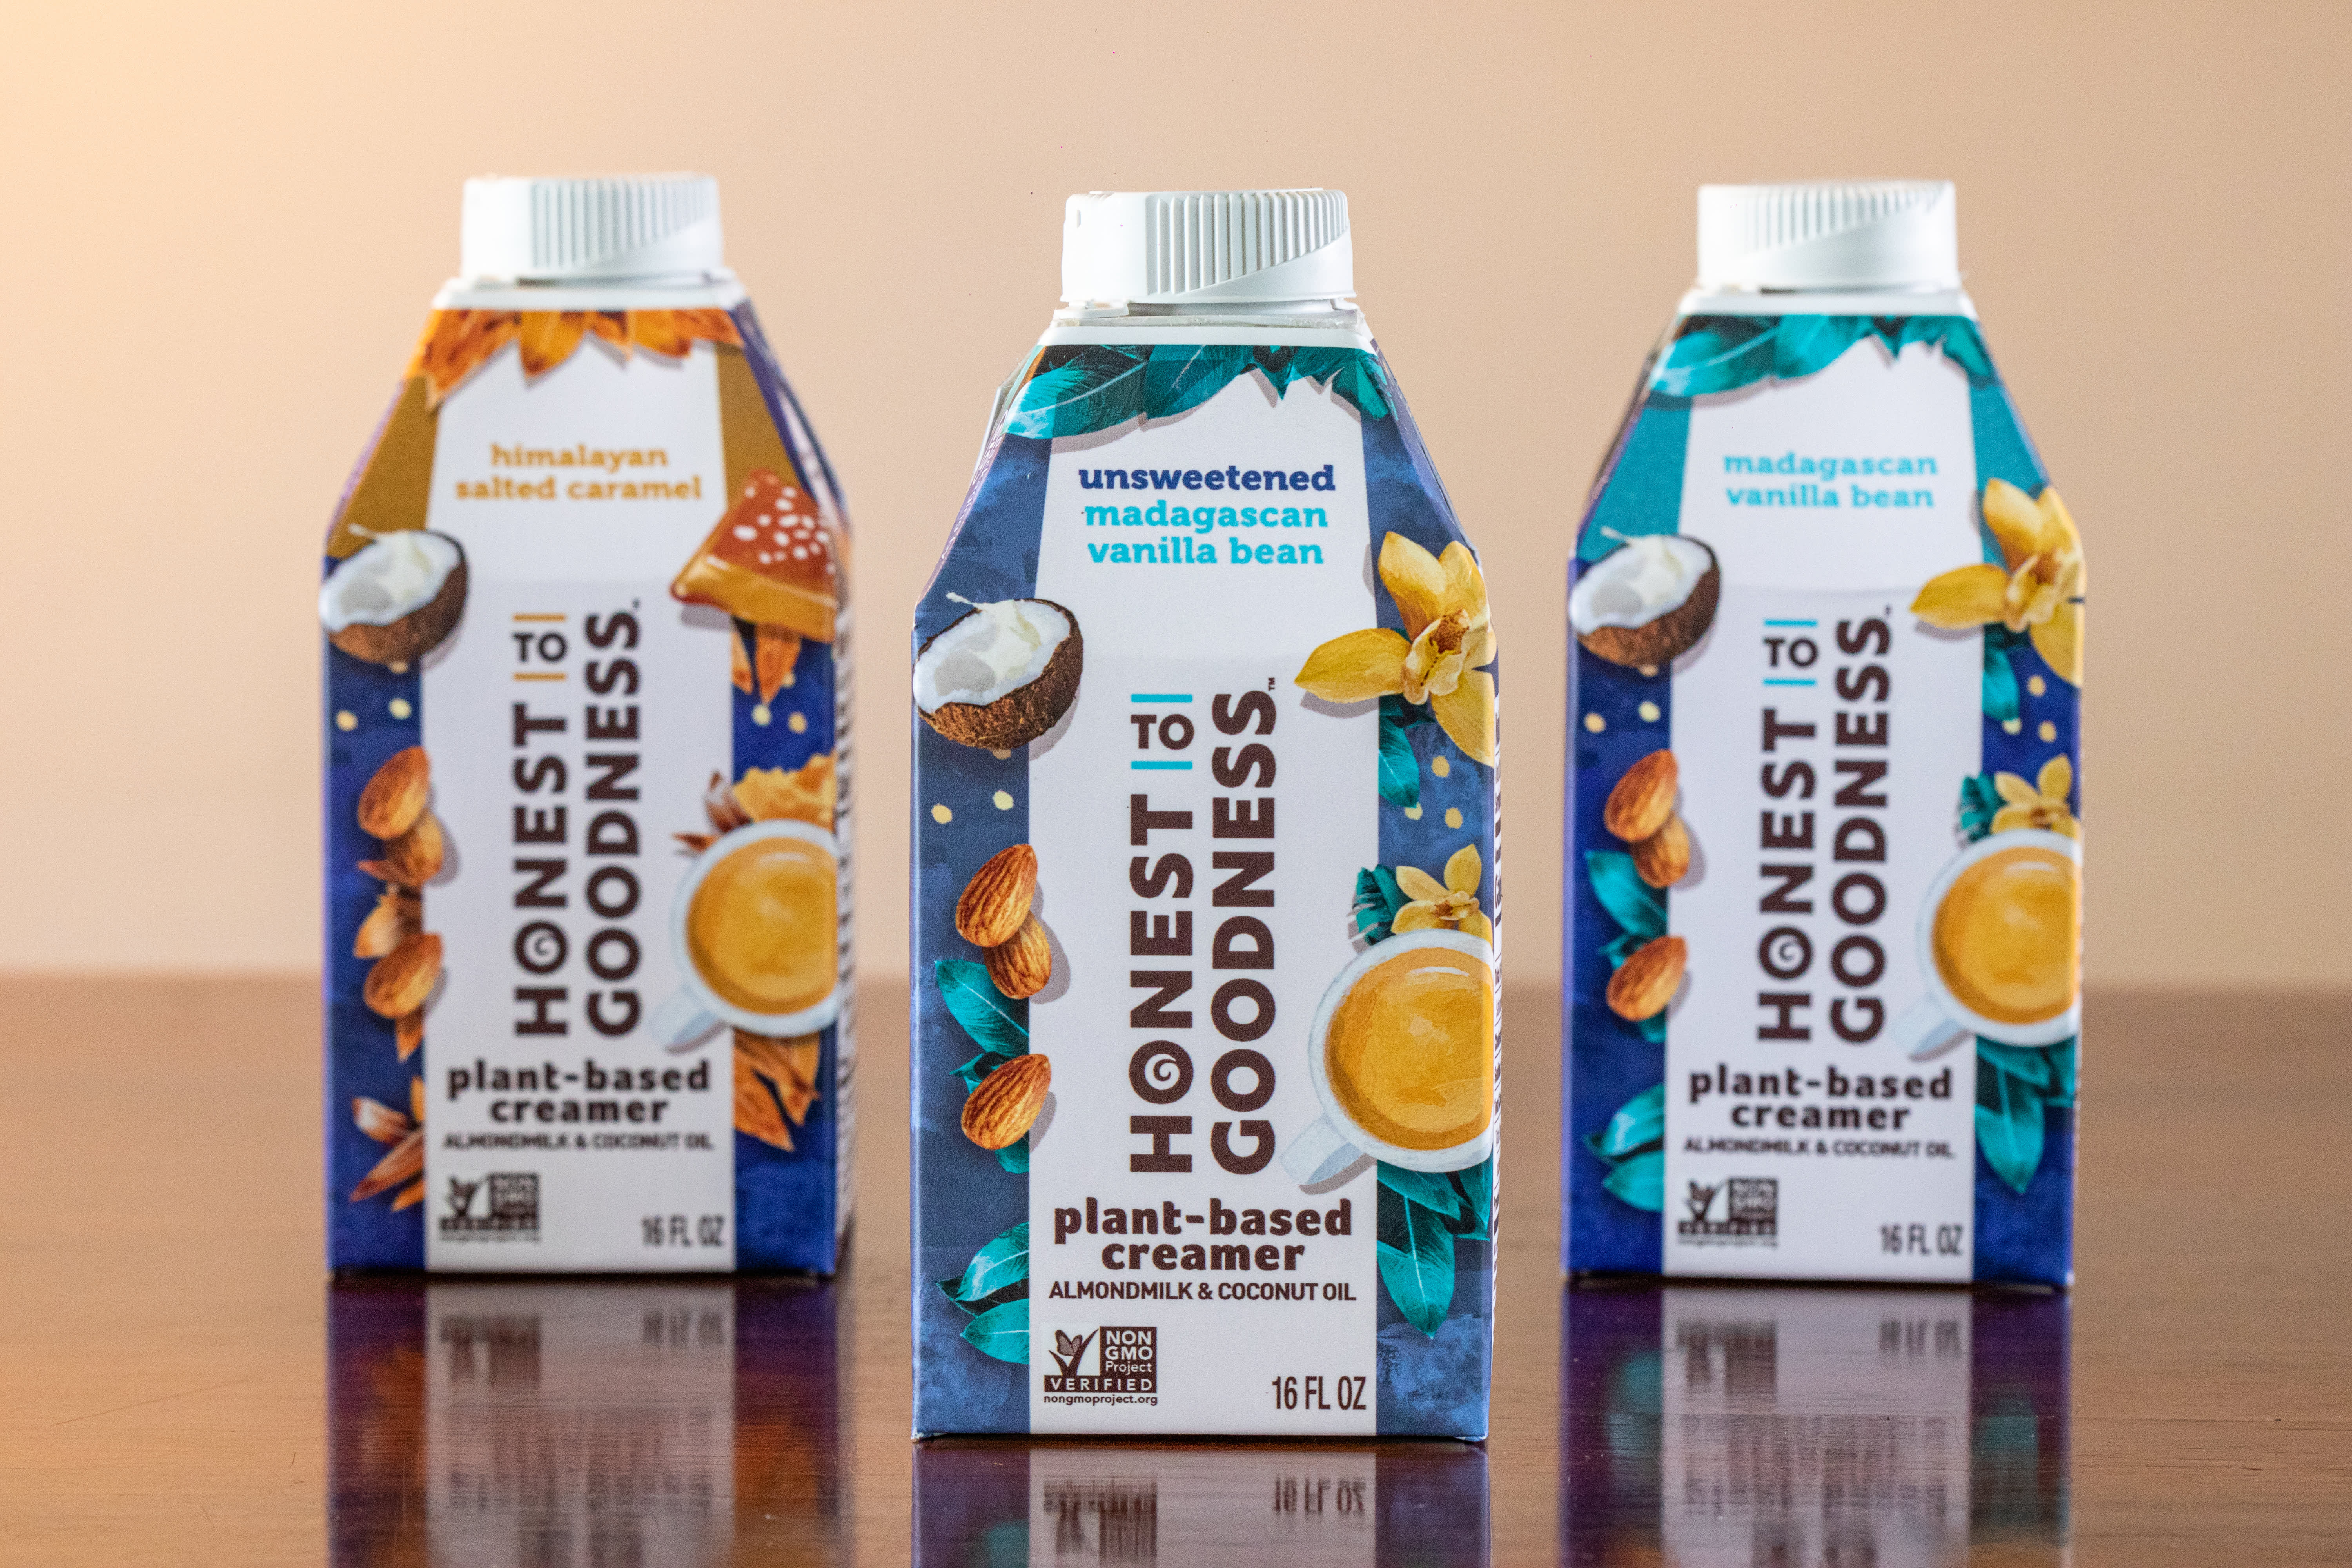 Danone looks to grab more coffee creamer sales with launch of plant-based Honest to Goodness brand